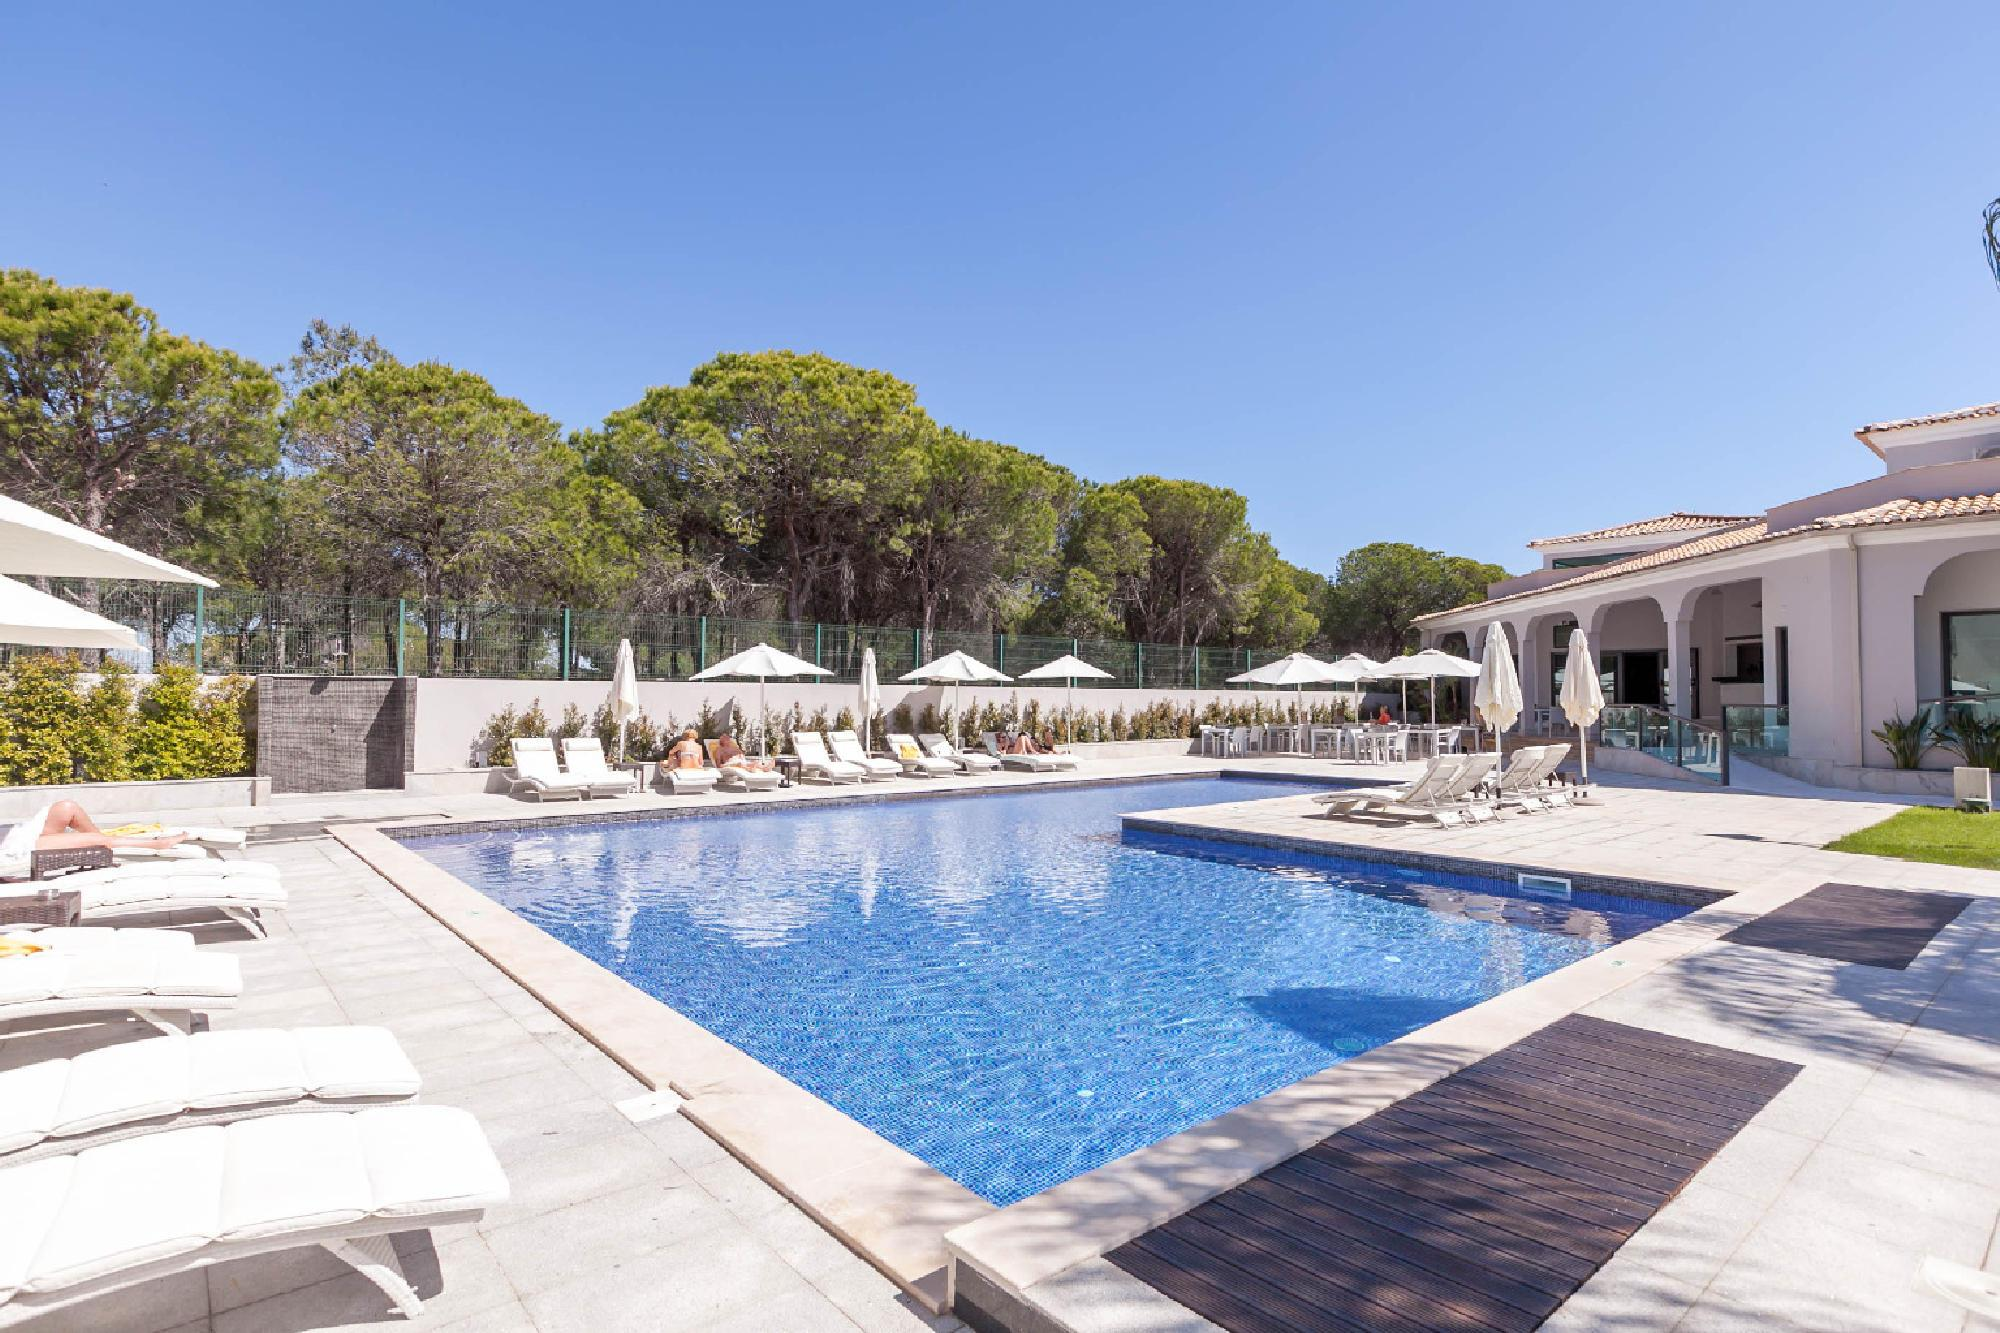 Magnolia Golf and Wellness Hotel's finest outdoor pool within Algarve